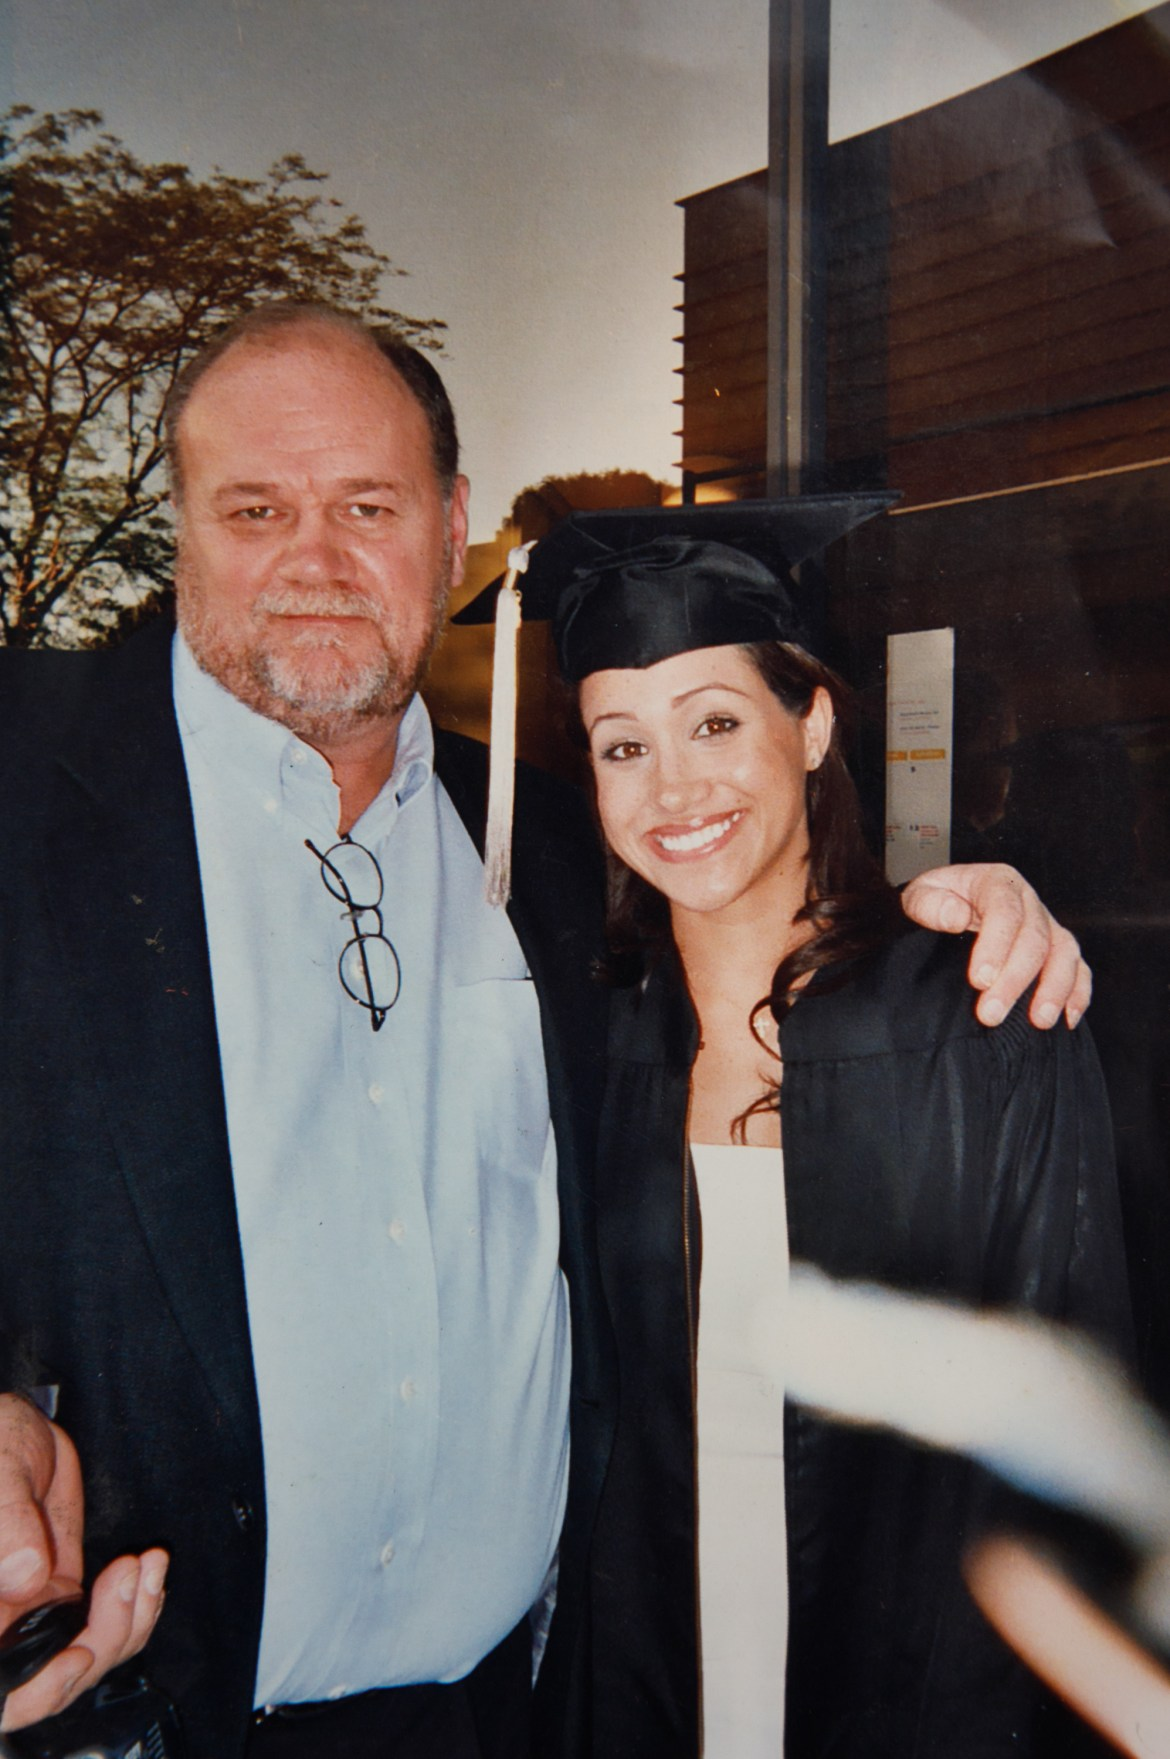 Thomas Markle claims to have paid off Meghan Markle's student loans even after she became a star in the TV series Suits